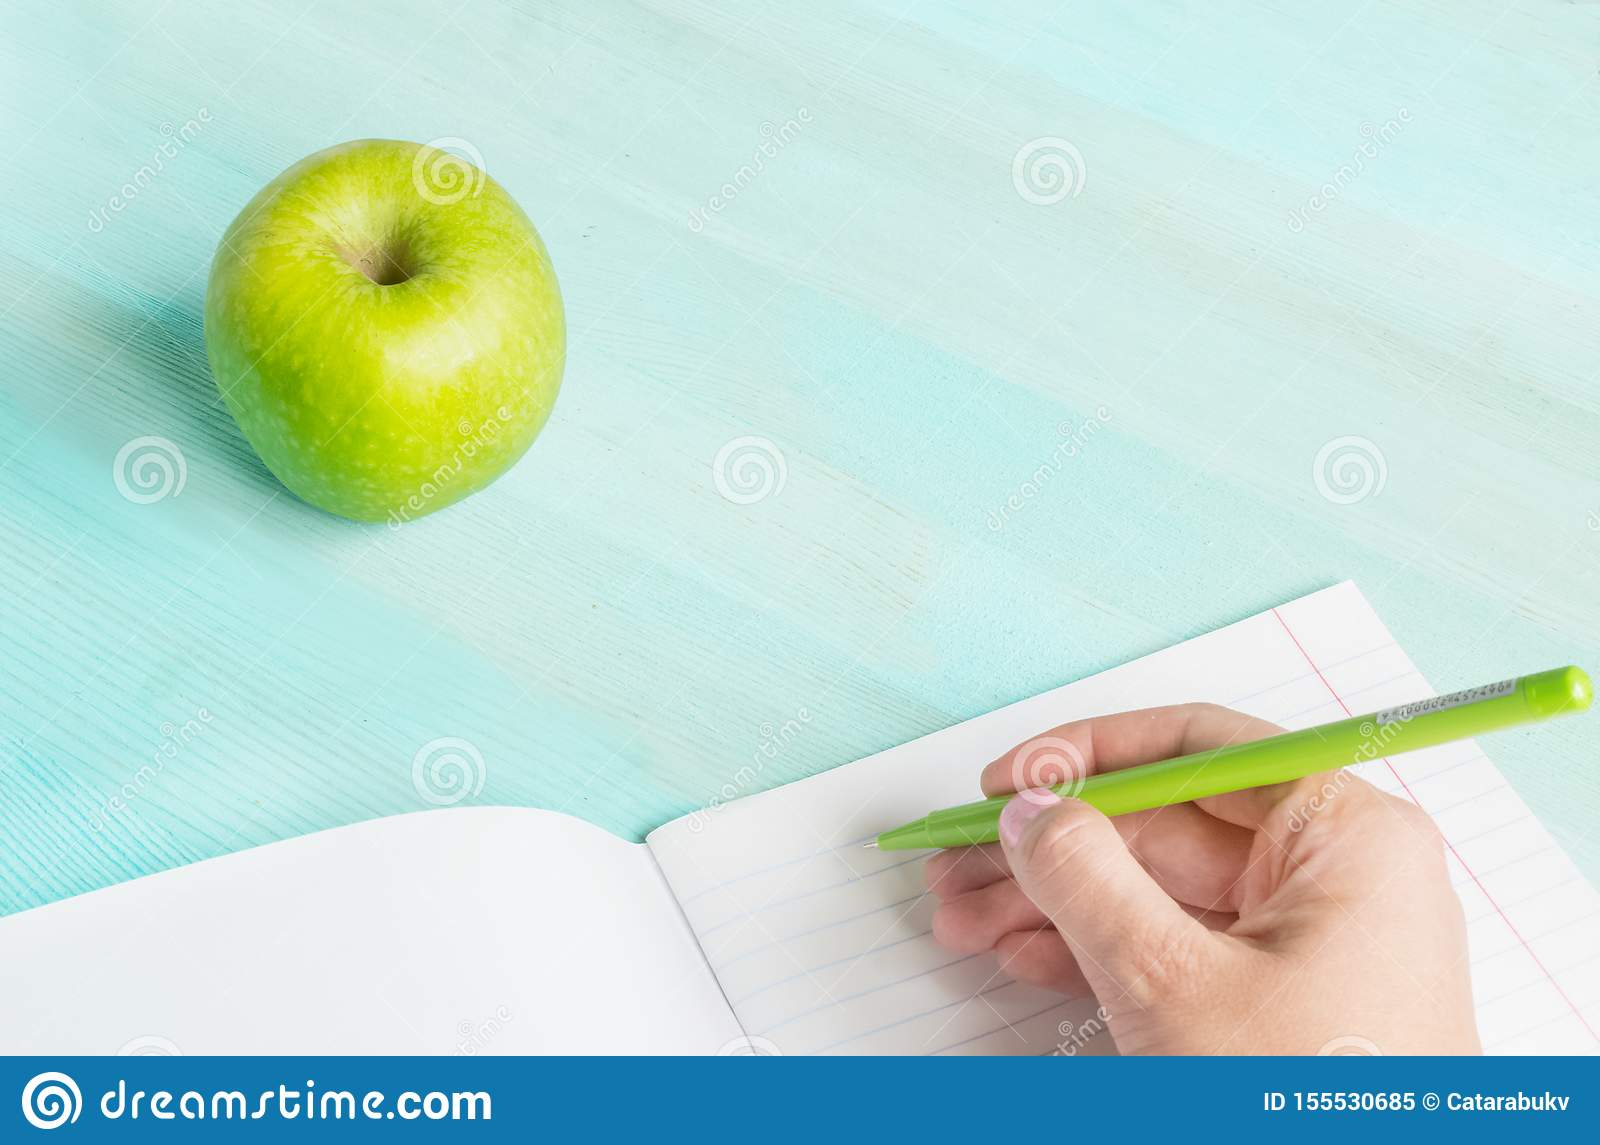 Concept back to school.School accessories, pen with empty notebook on blue wooden background